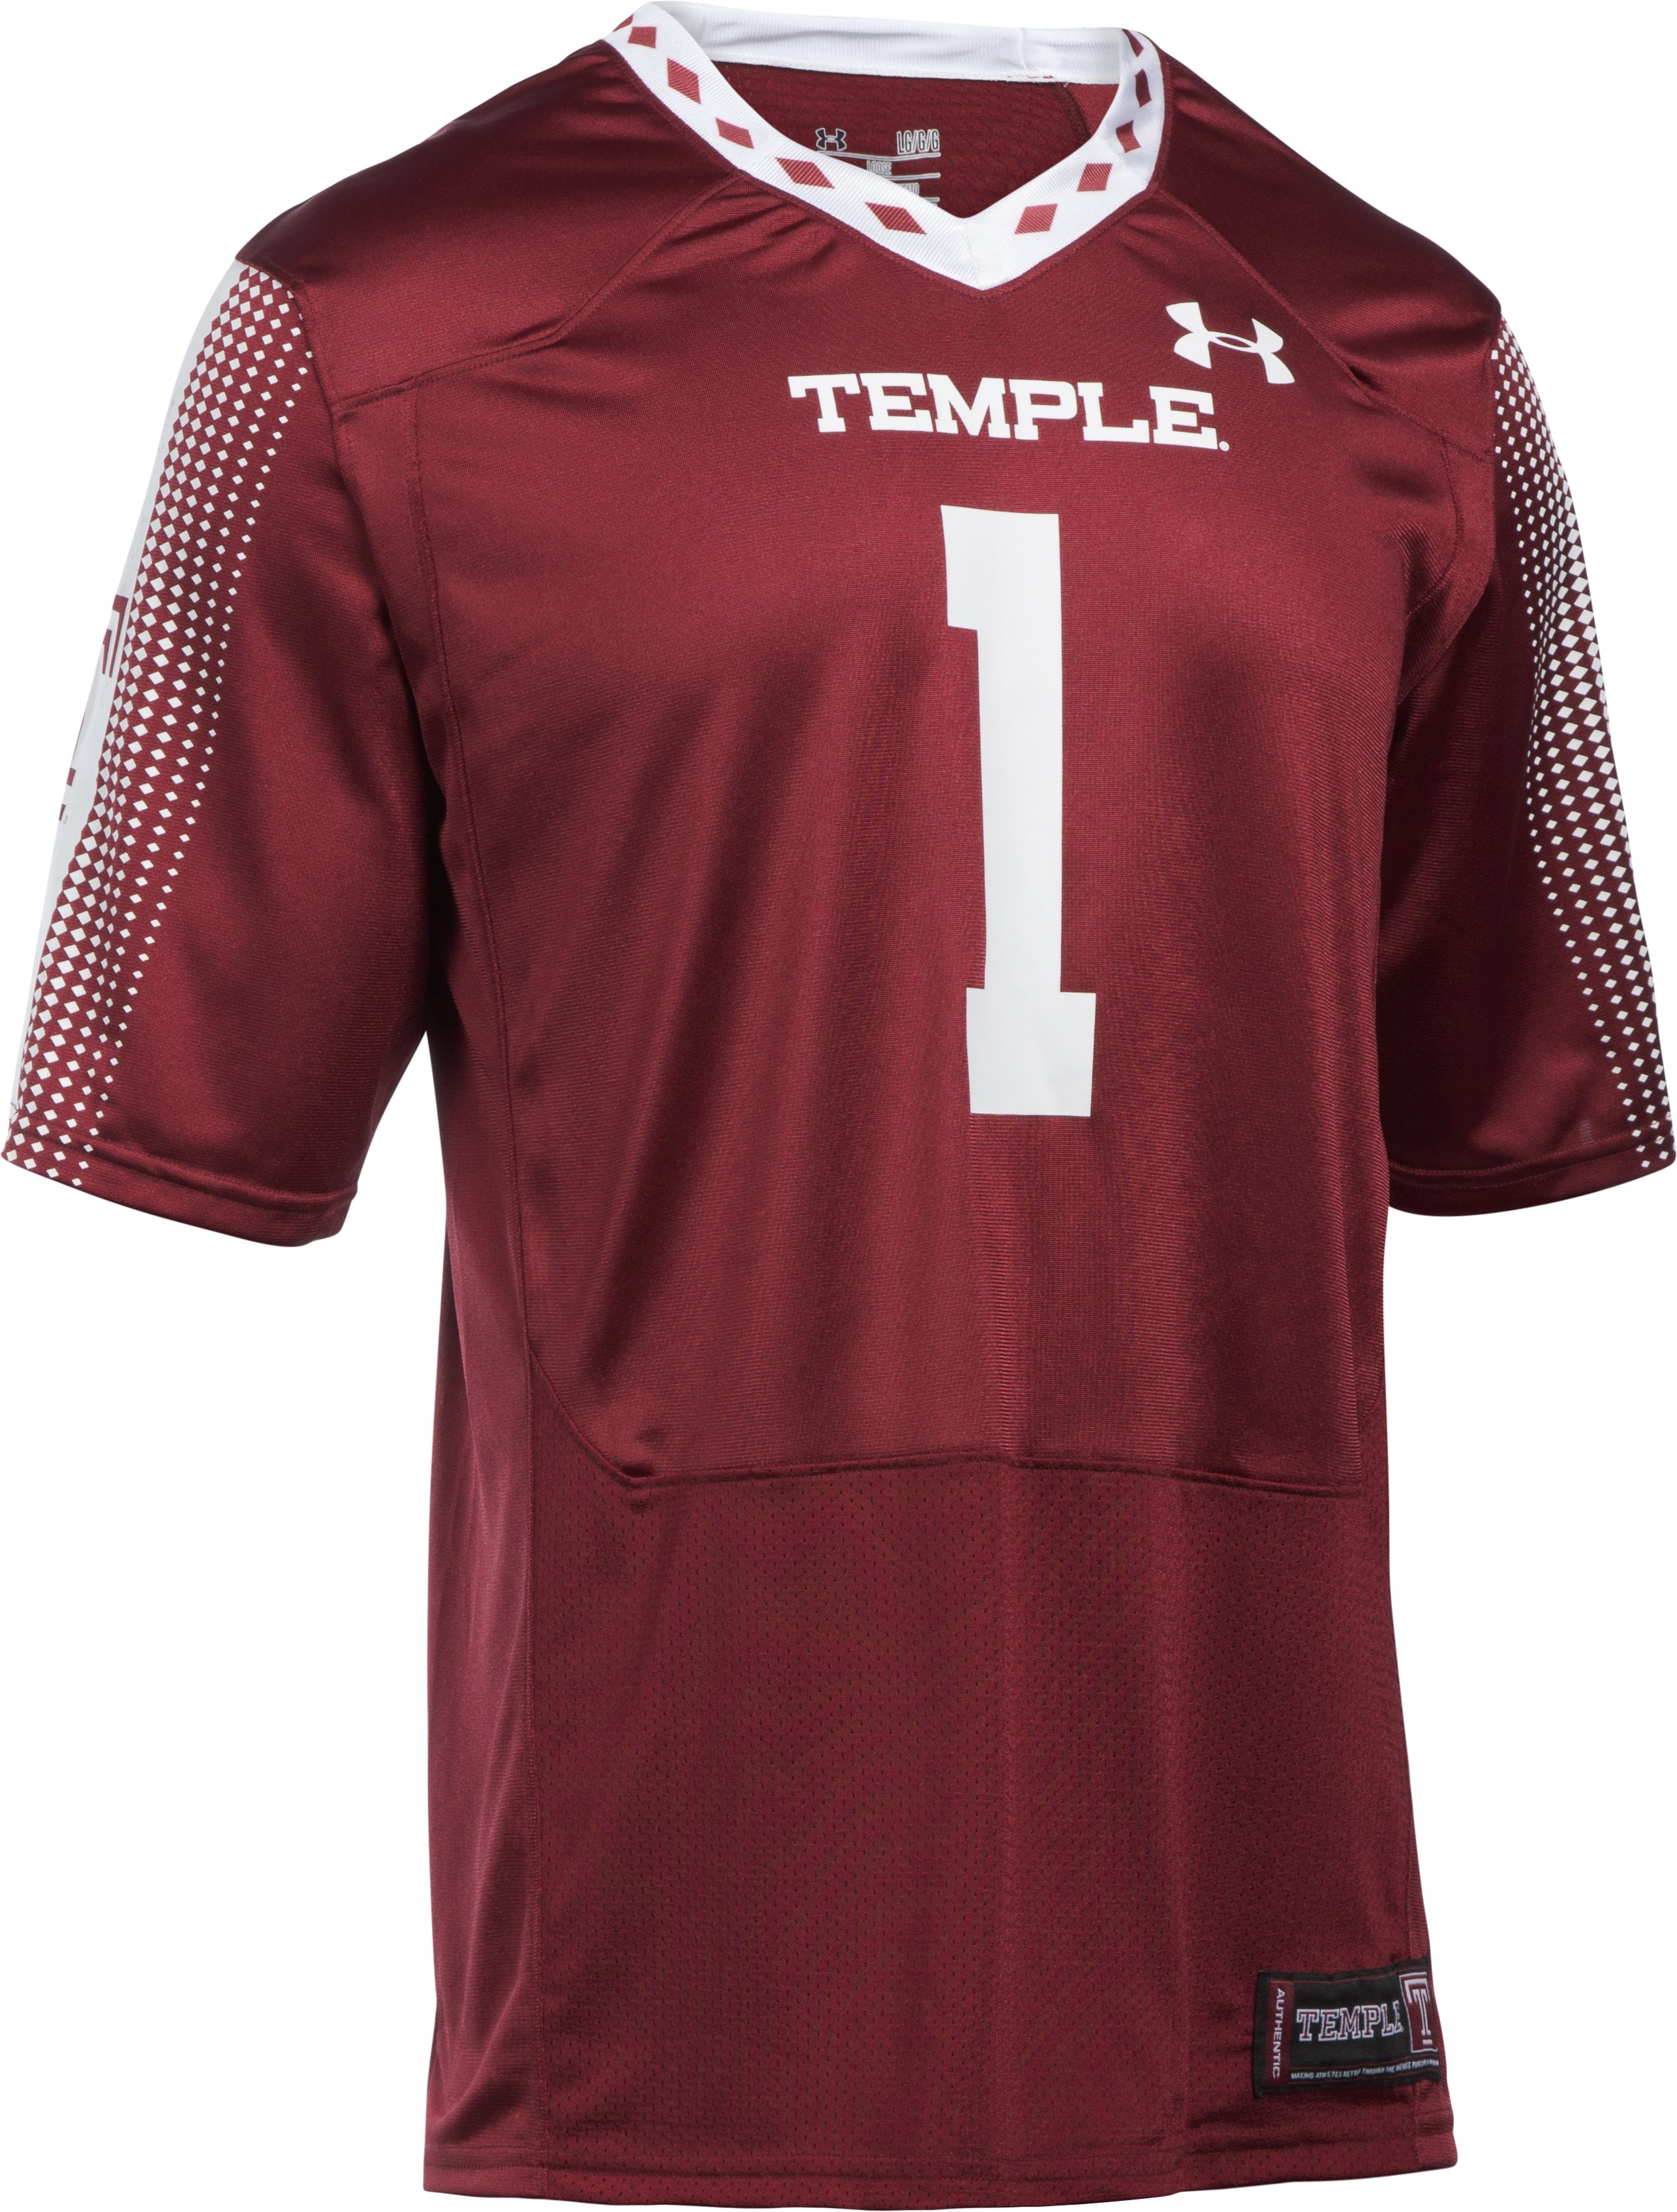 Men's Temple UA Replica Football Jersey, Maroon